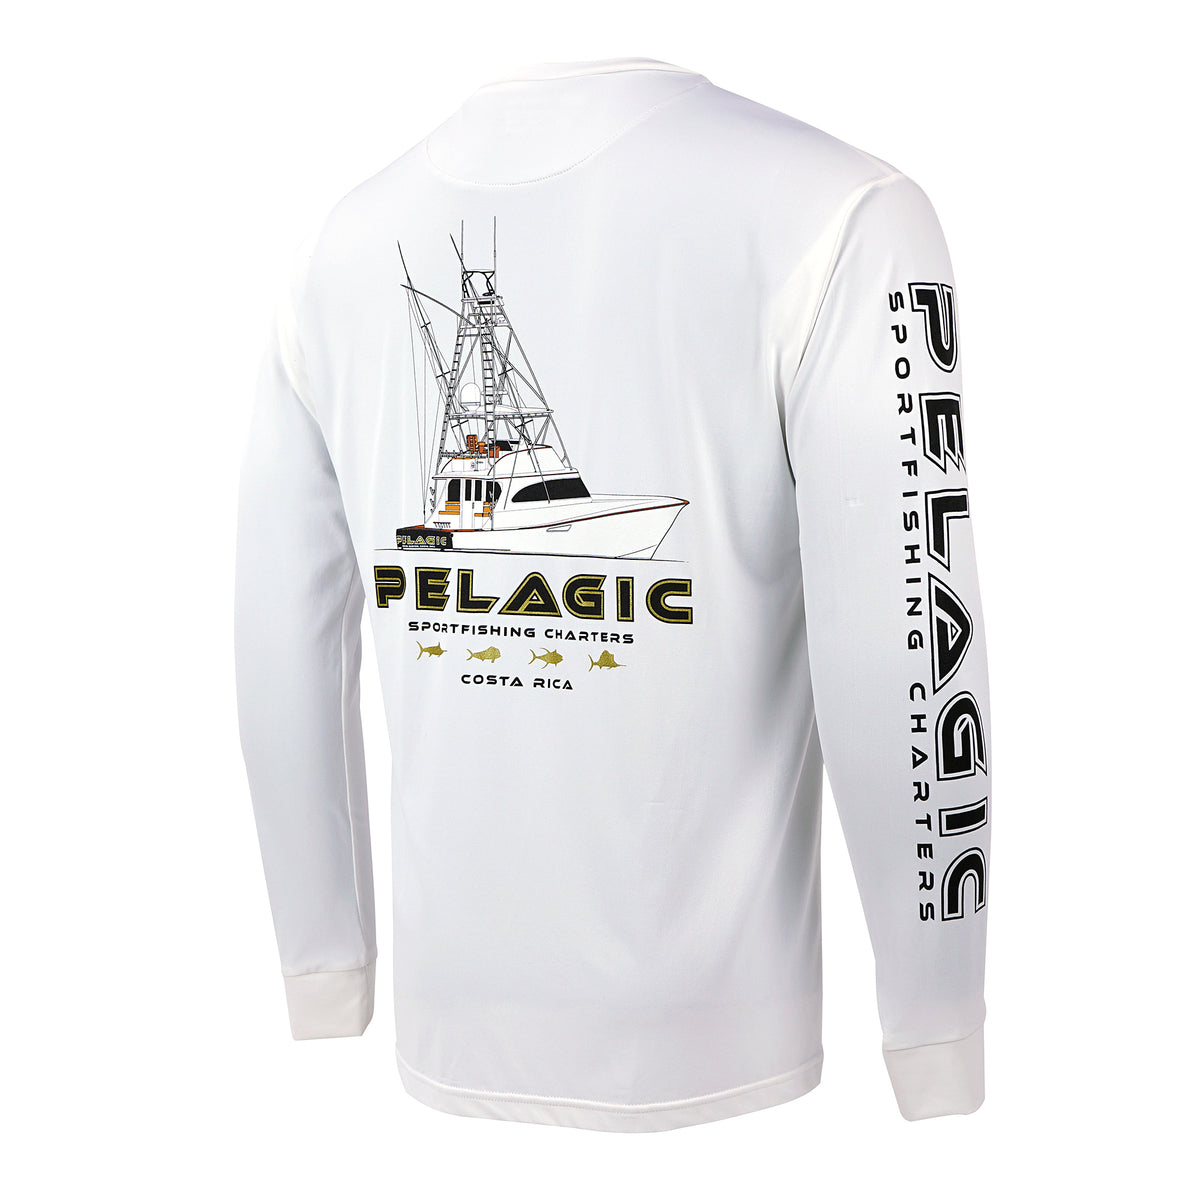 Pelagic Sportfishing Aquatek Big Image - 1